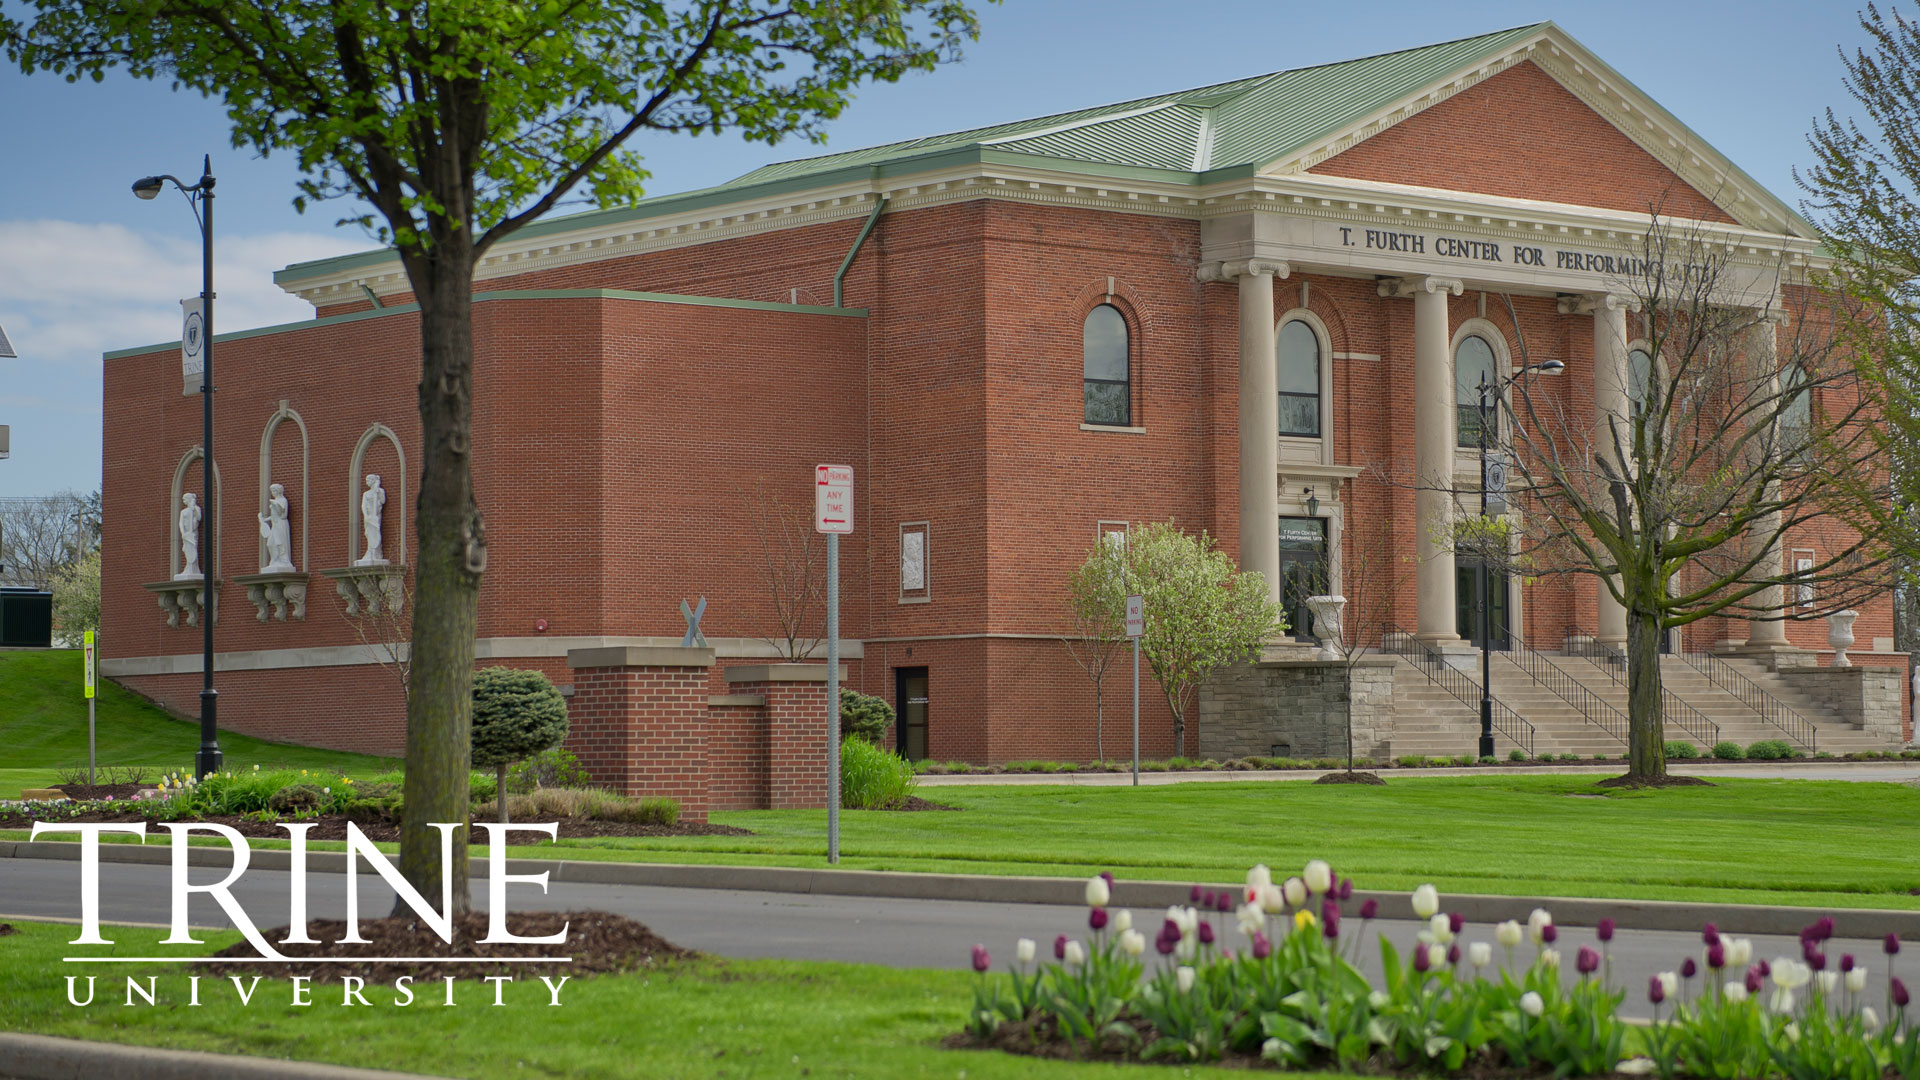 T. Furth Center at Spring - Trine University